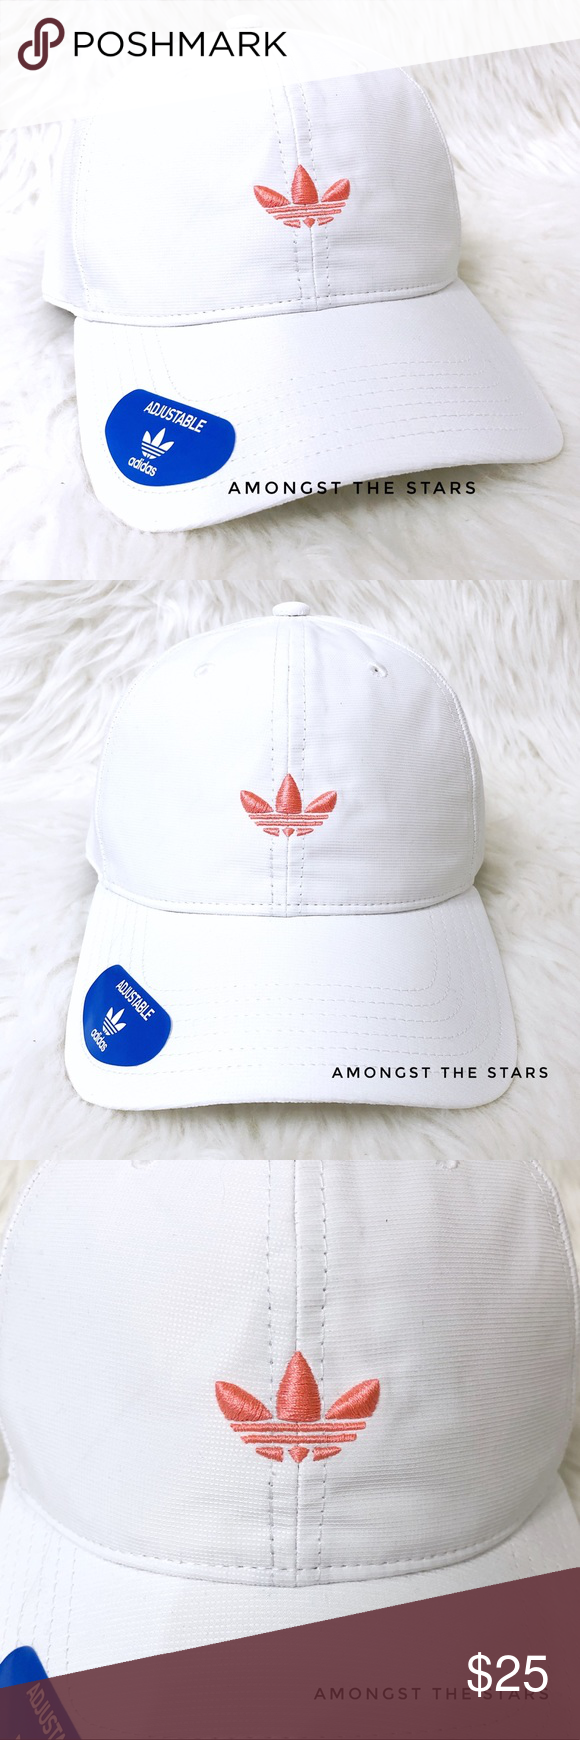 5e72bb350e7 adidas Relaxed Modern White Coral Strapback Hat Brand new